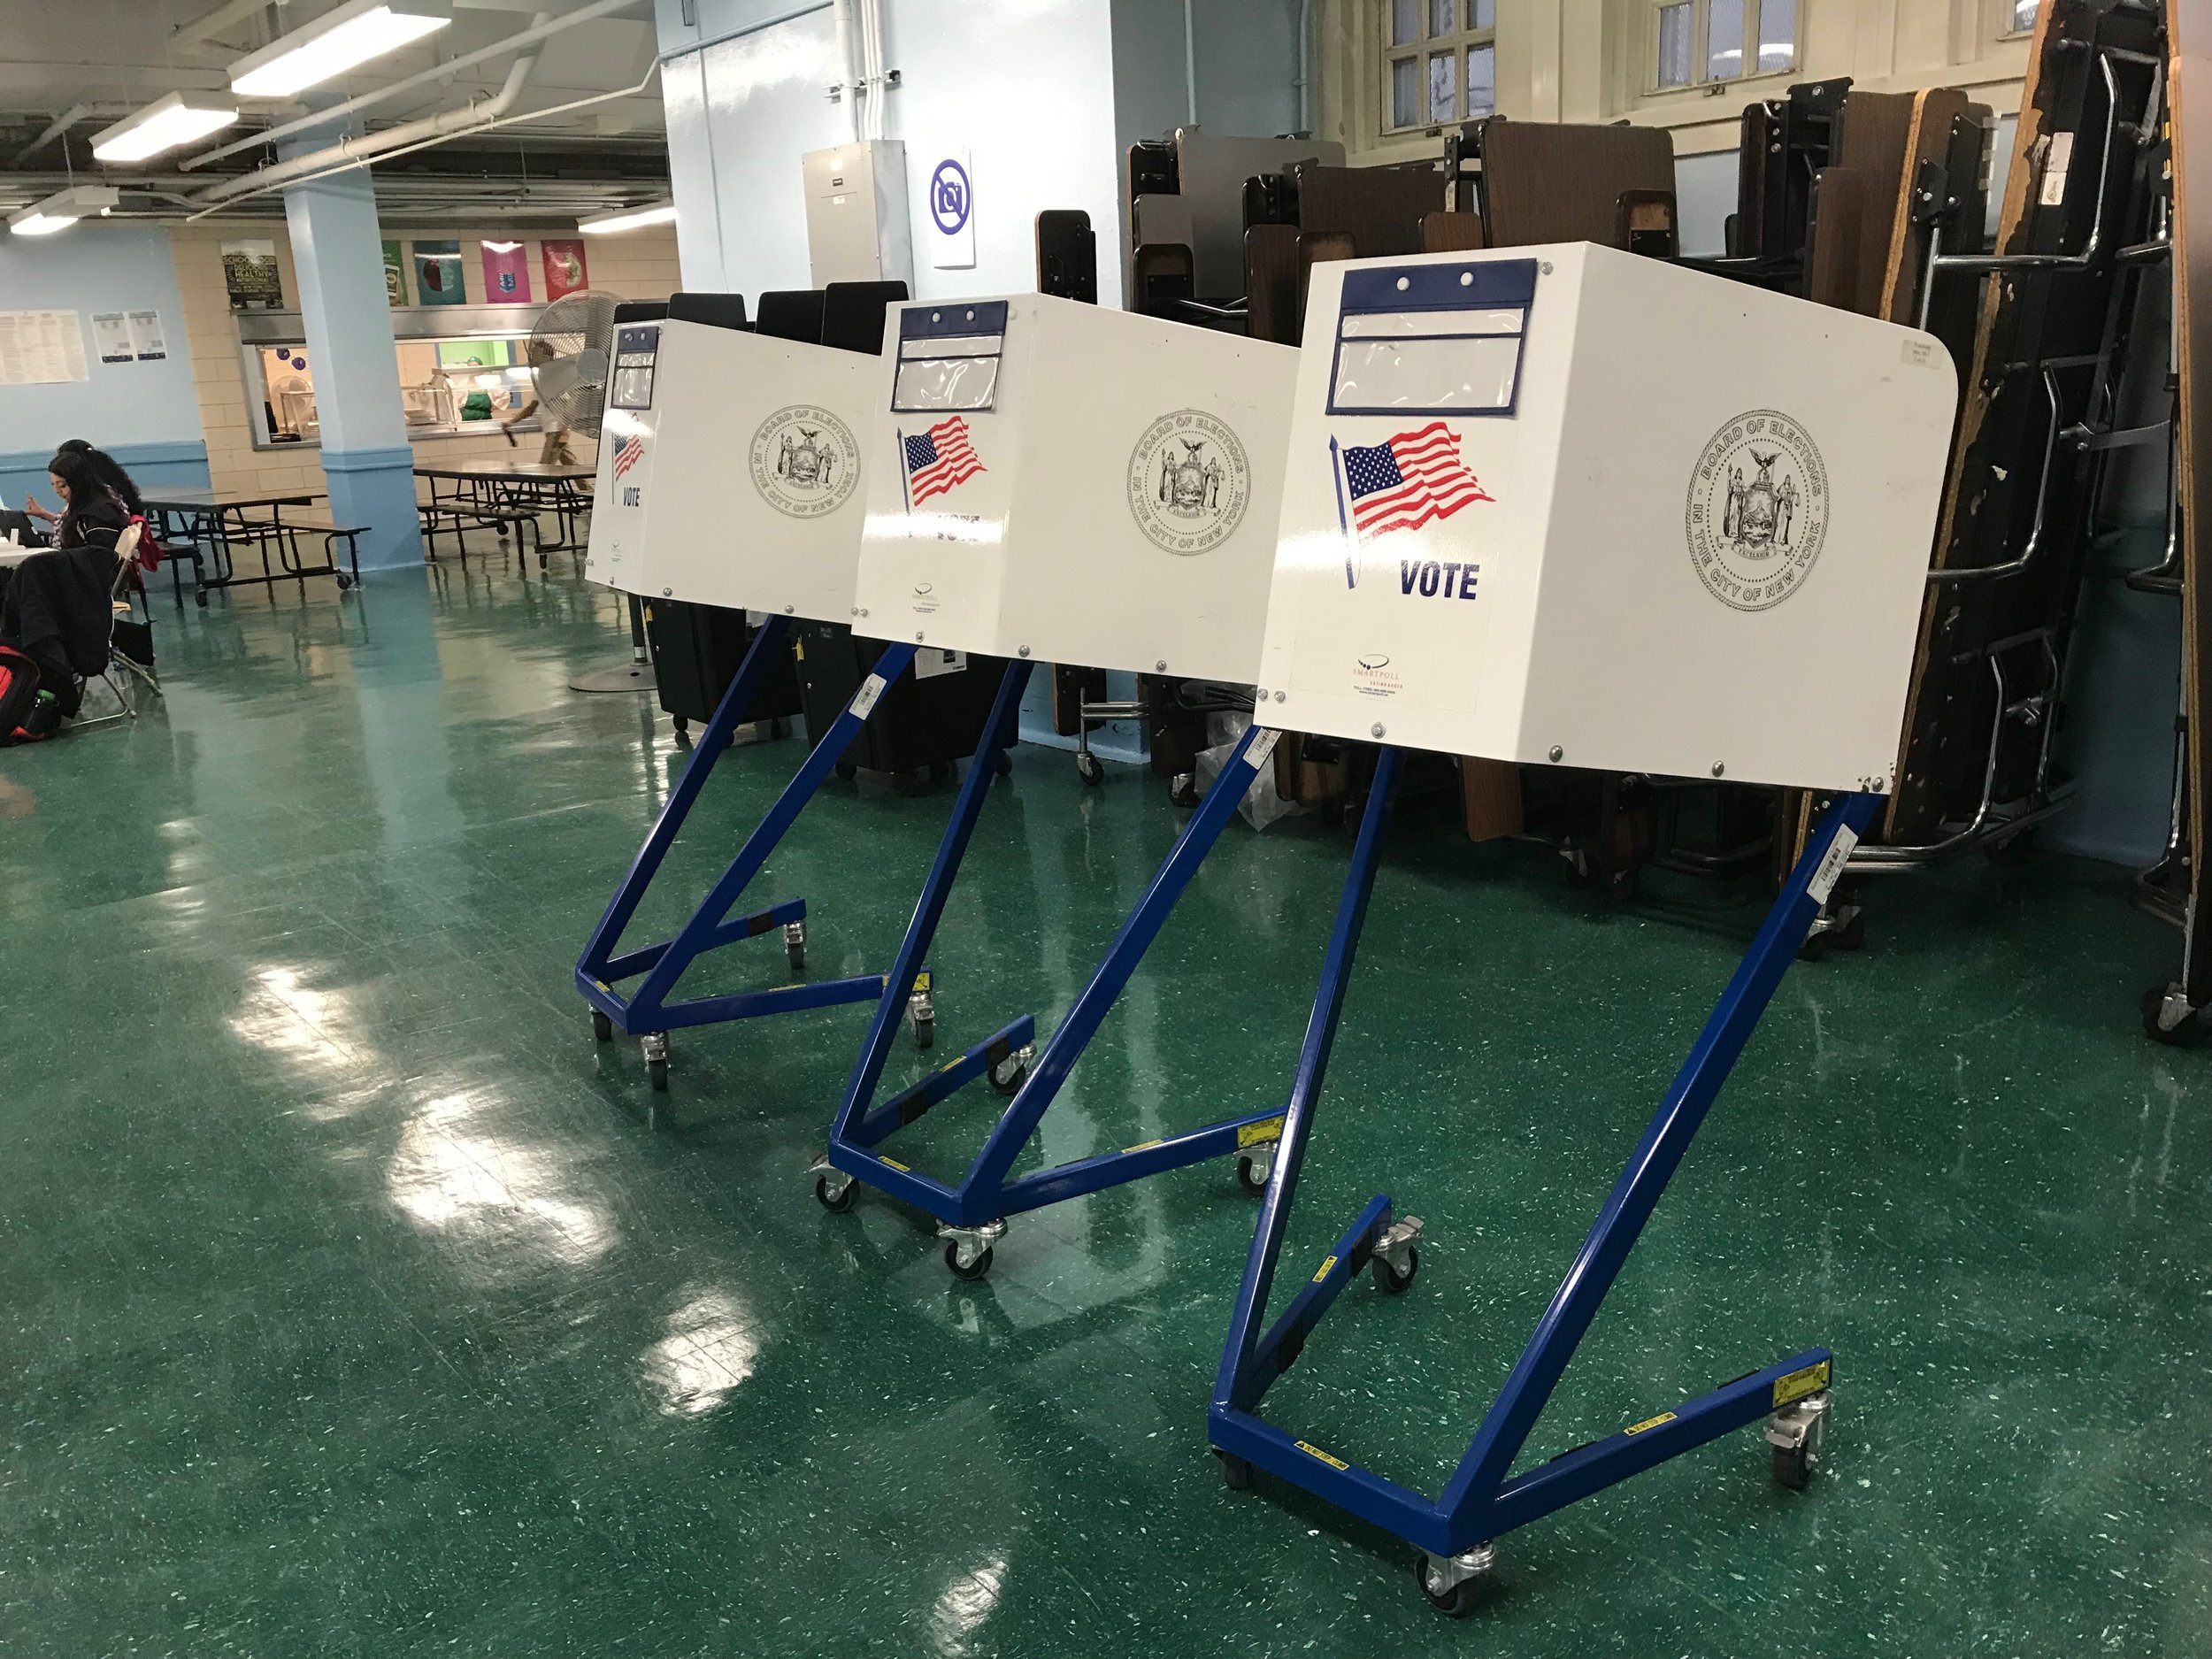 An empty polling place awaits voters in Ridgewood Tuesday morning.  Eagle  photo by David Brand